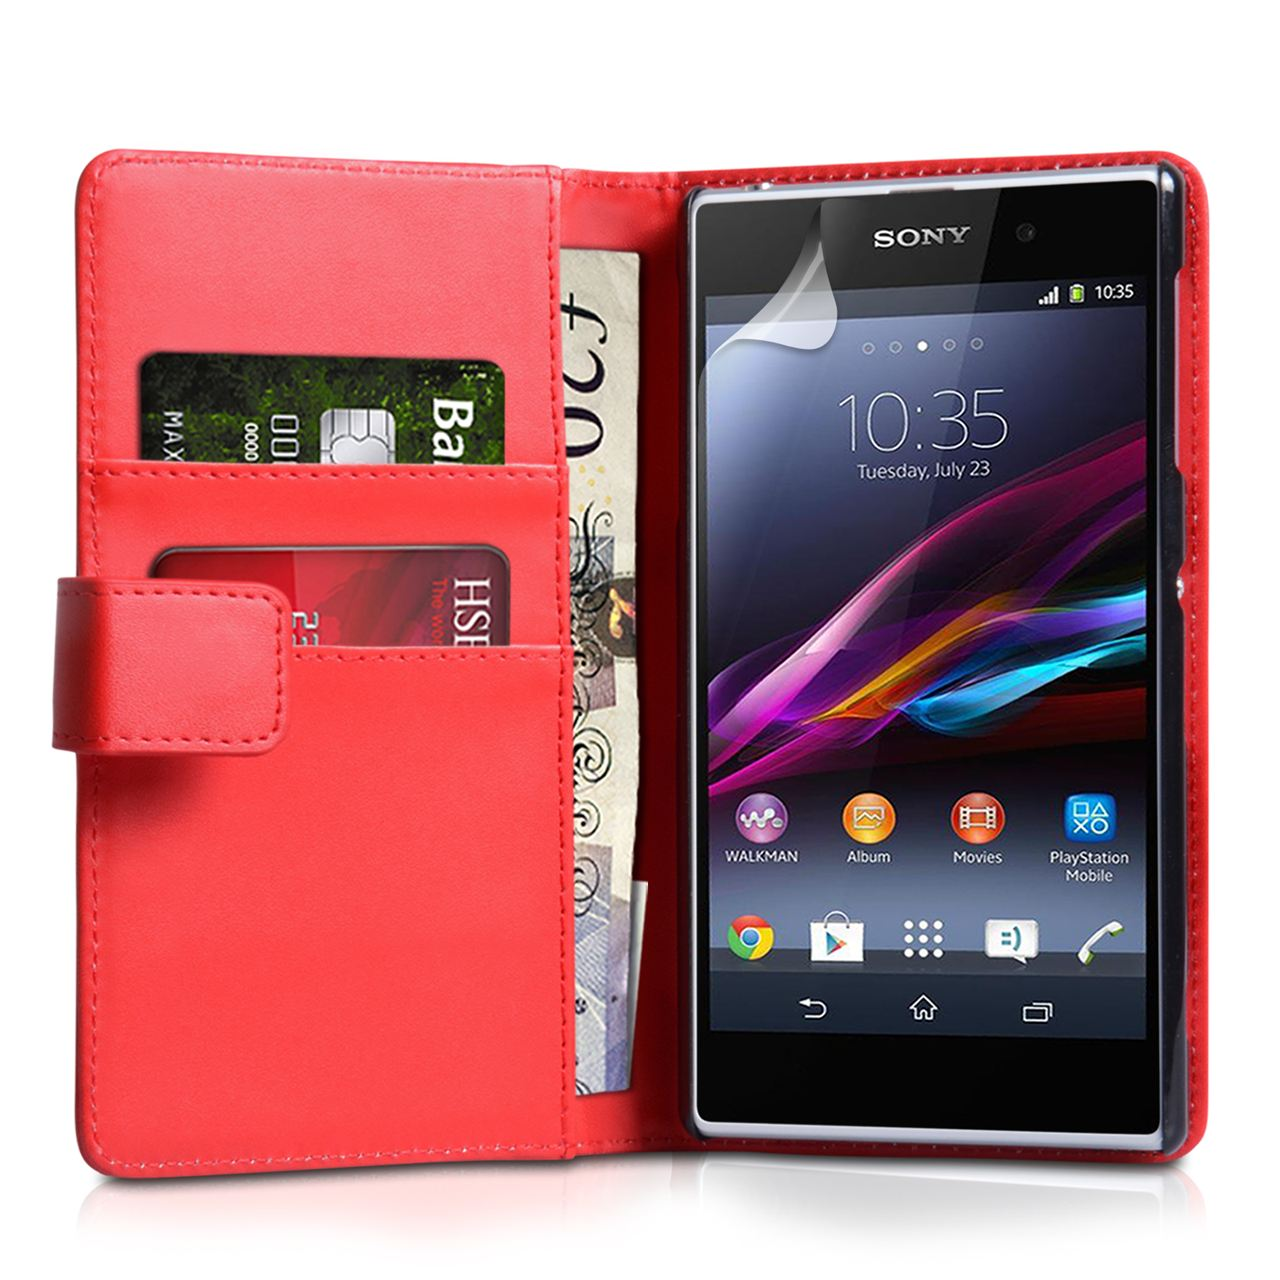 YouSave Accessories Sony Xperia Z1 Leather Effect Wallet - Red